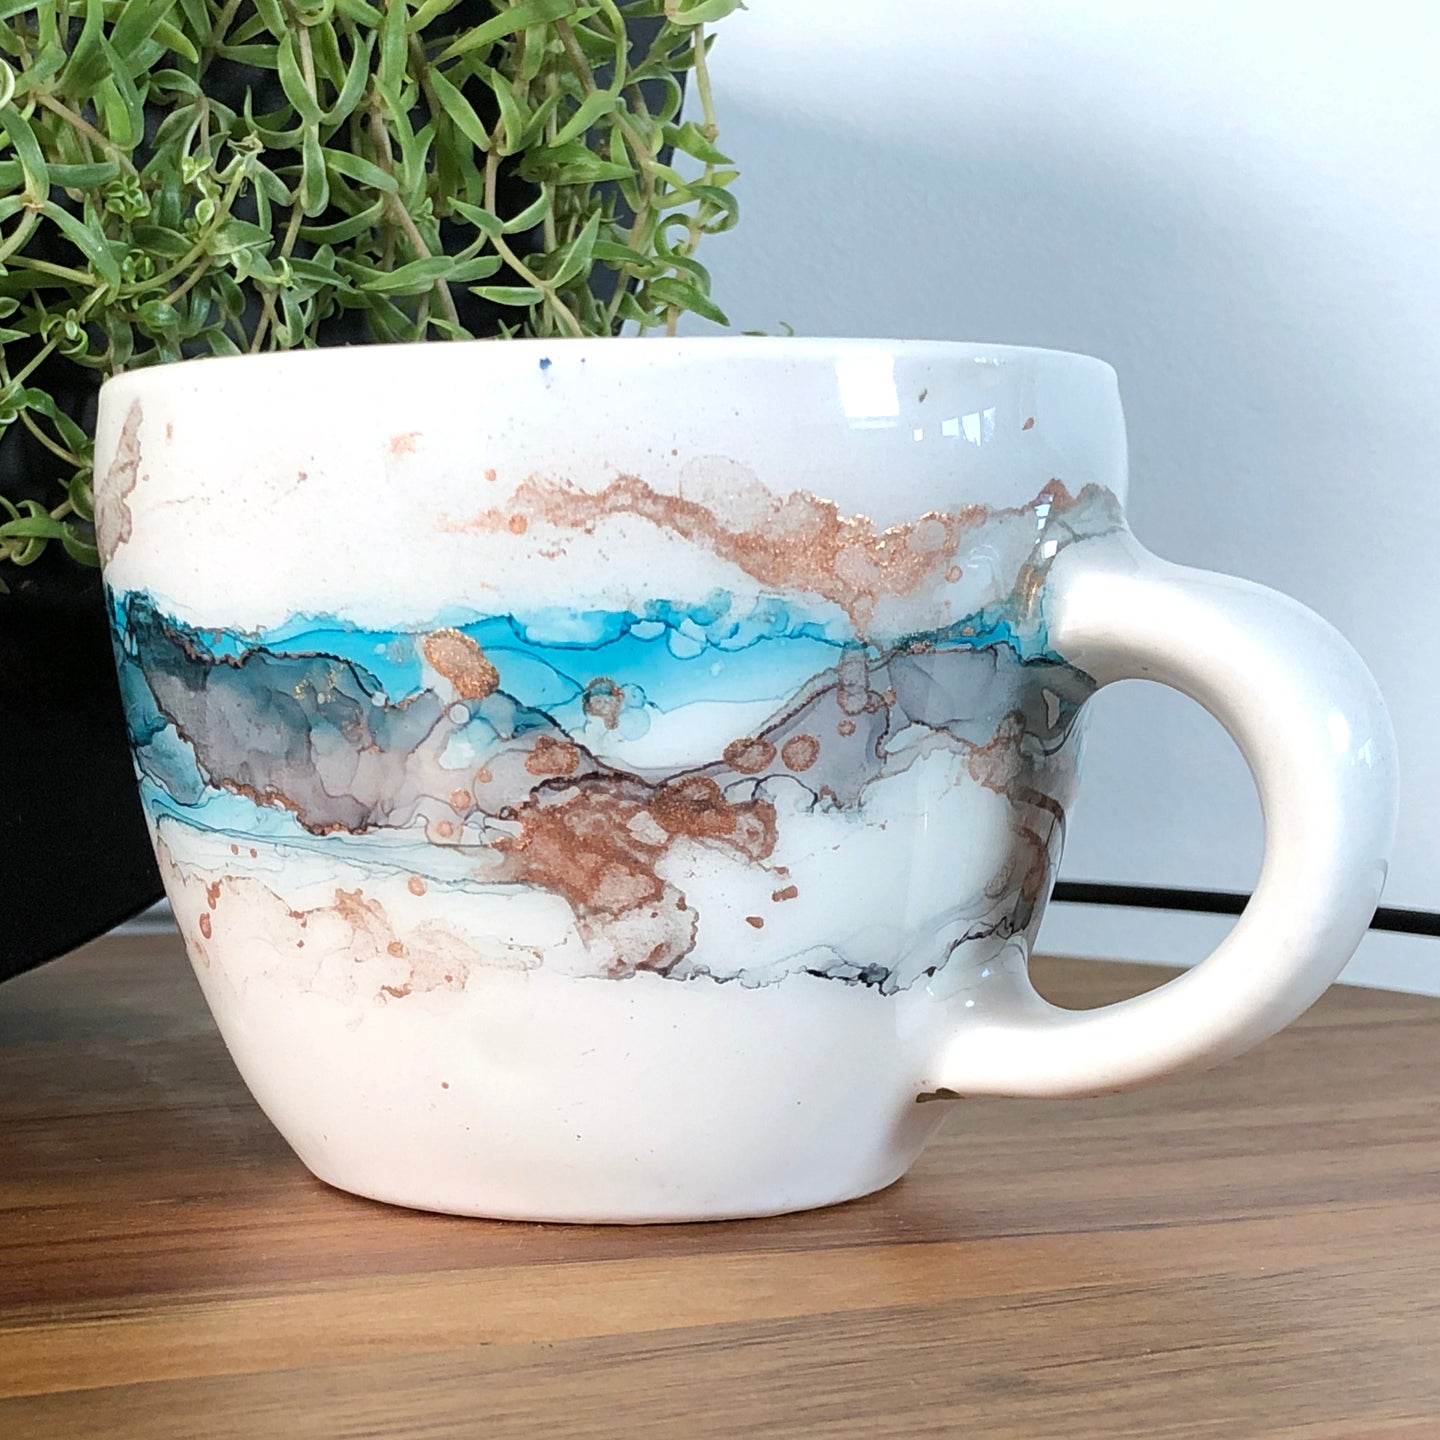 Sea teal, black and copper alcohol ink hand-painted on 16oz stoneware coffee mug. Signed by the artist, Jaylin Knutson. right side